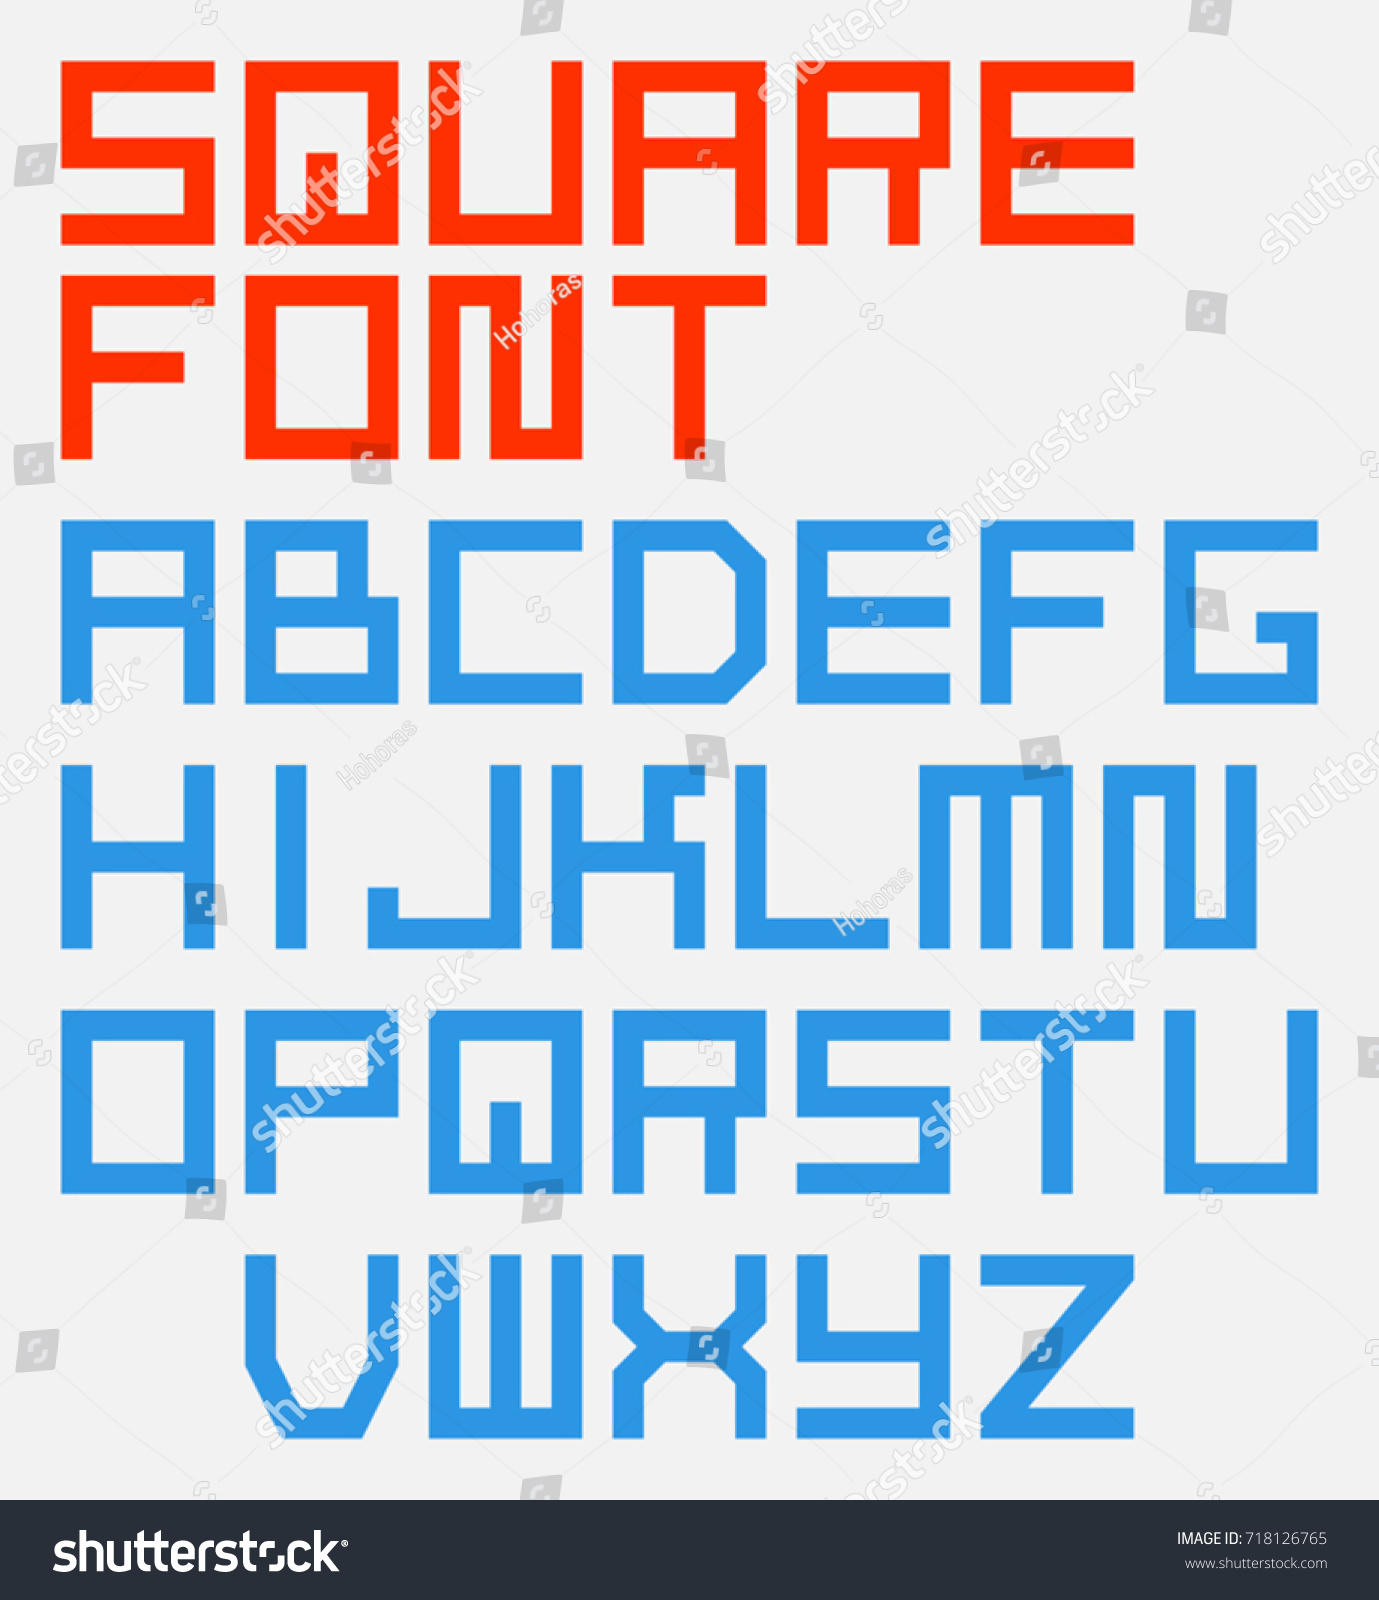 Square Blocky Geometric Vector Font English Alphabet With Capital Letters